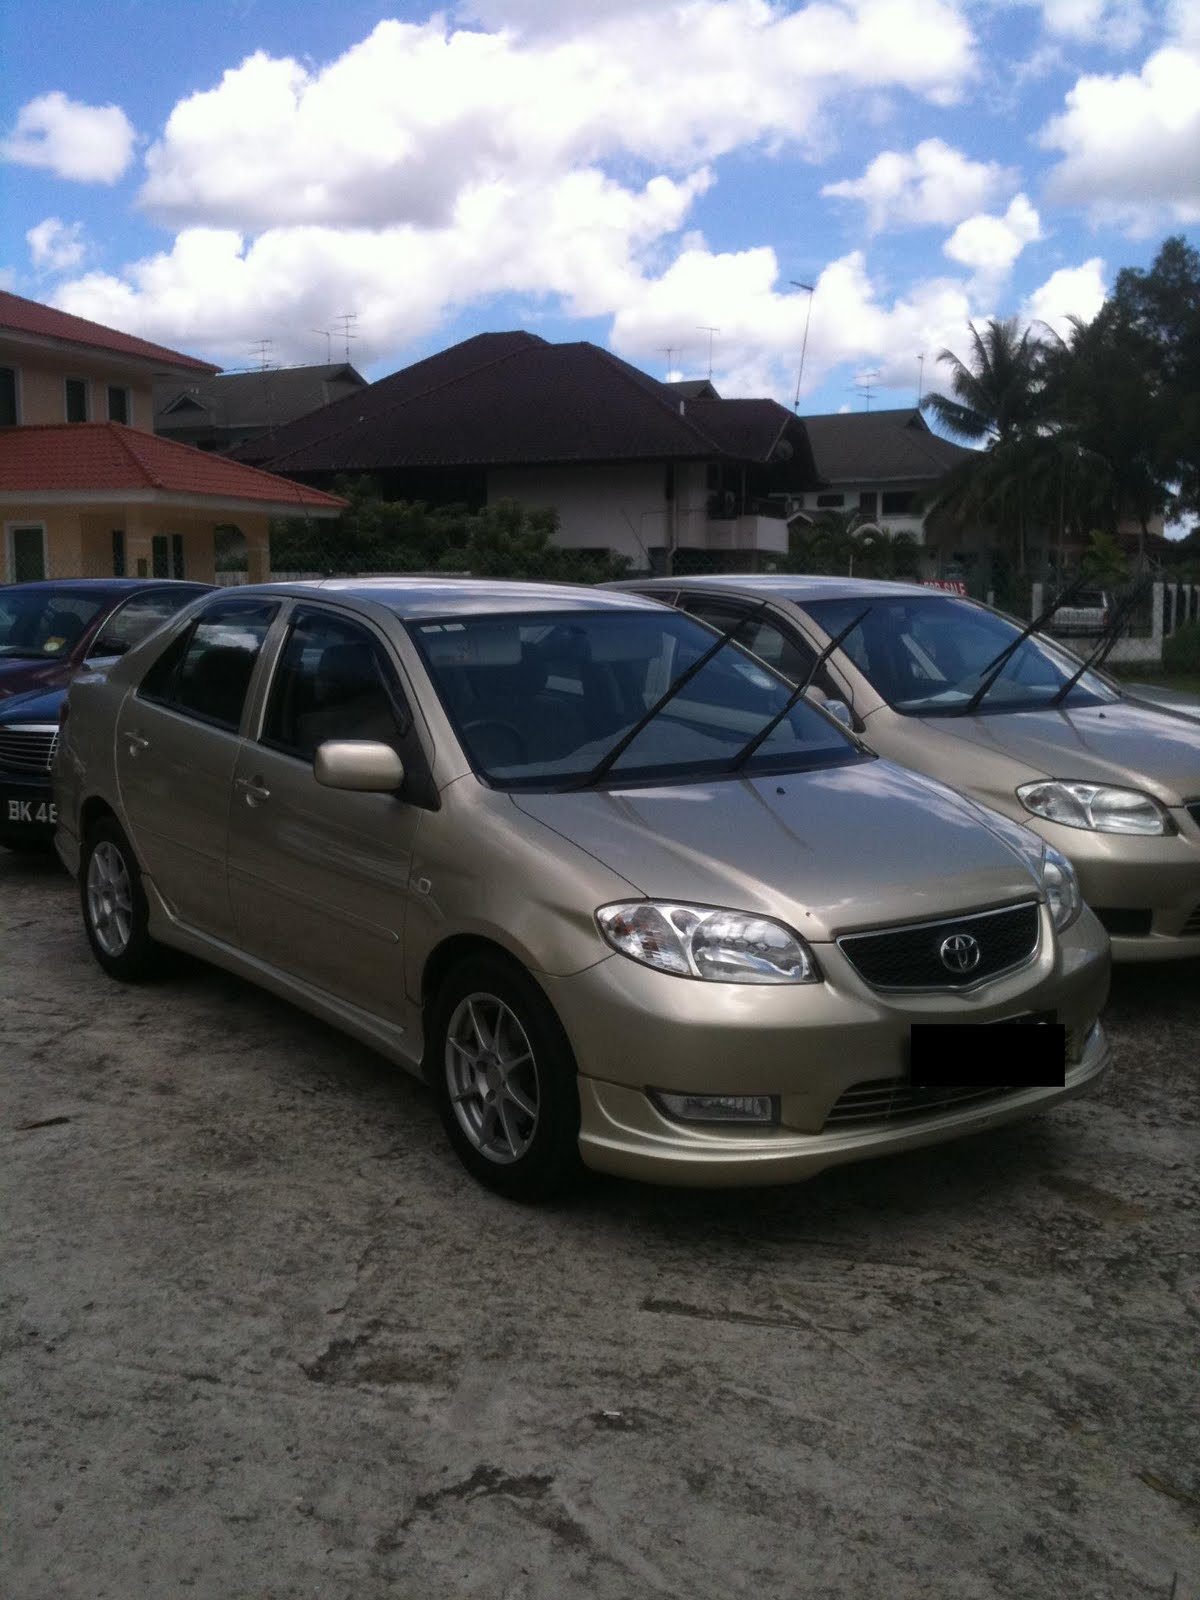 HONEY MOTORS SDN BHD QUALITY USED CARS FOR SALE